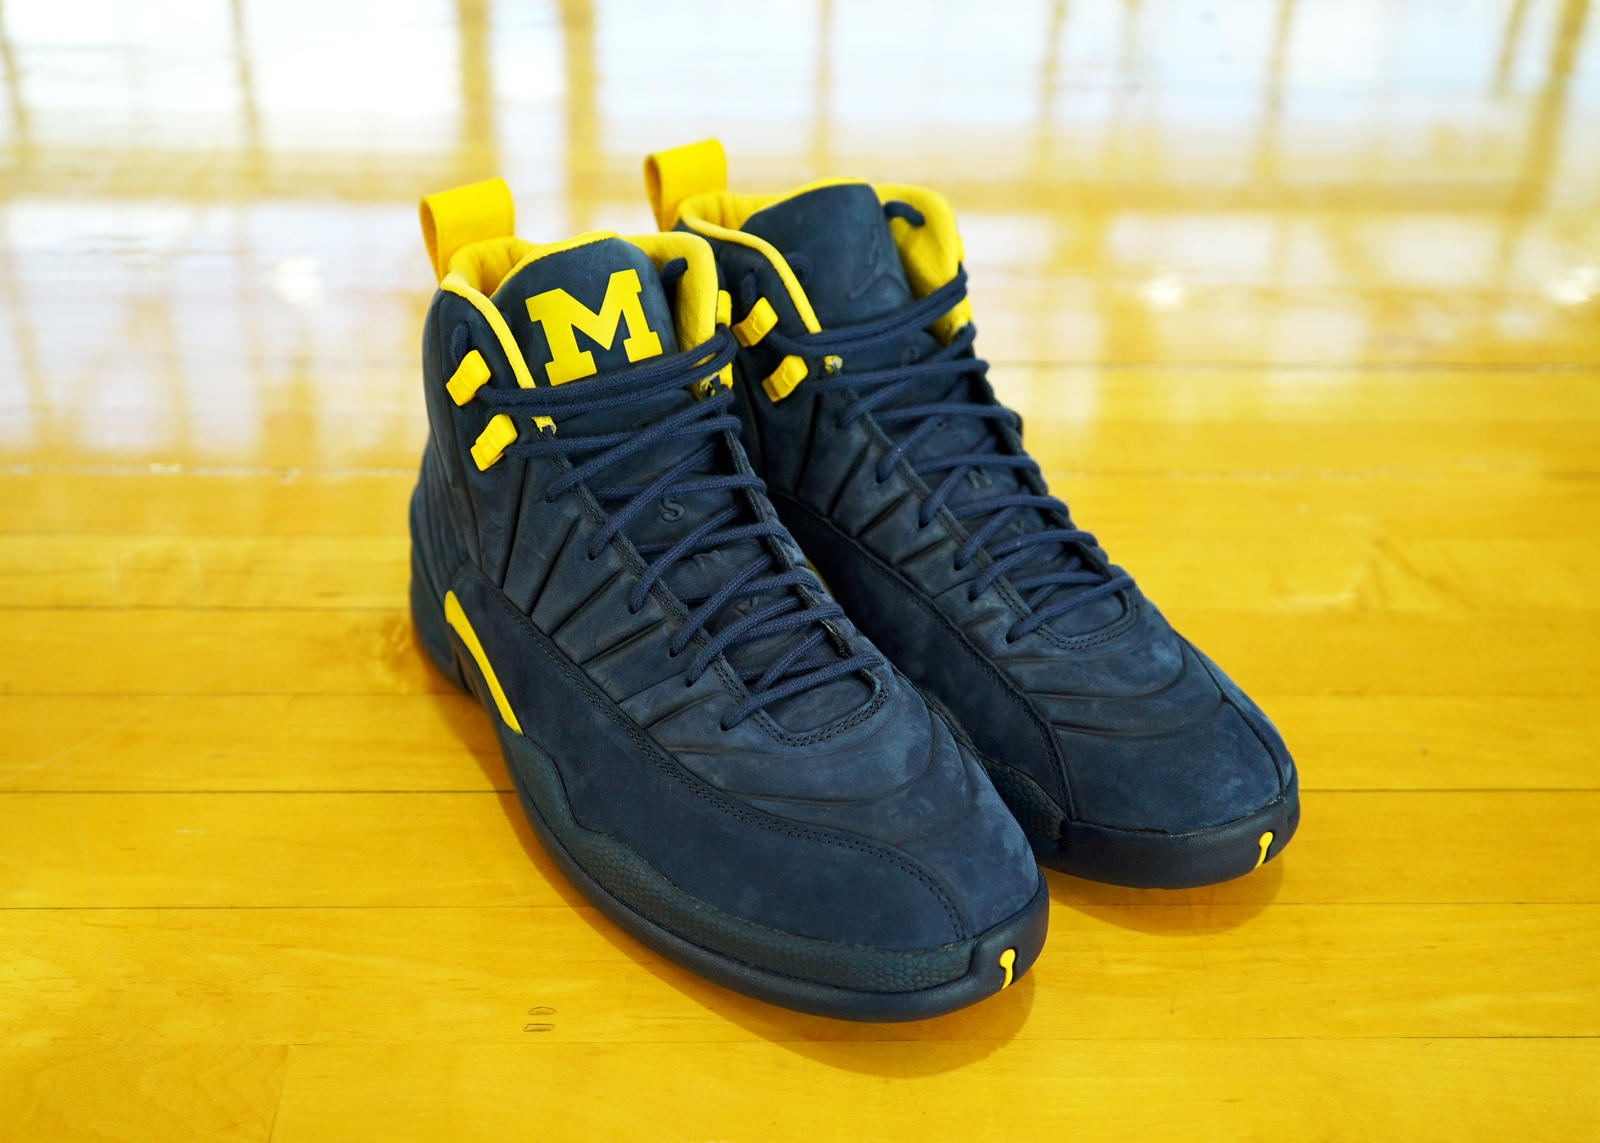 Jordan Brand, Michigan and PSNY Combine for First-Ever College Football Collaboration 37